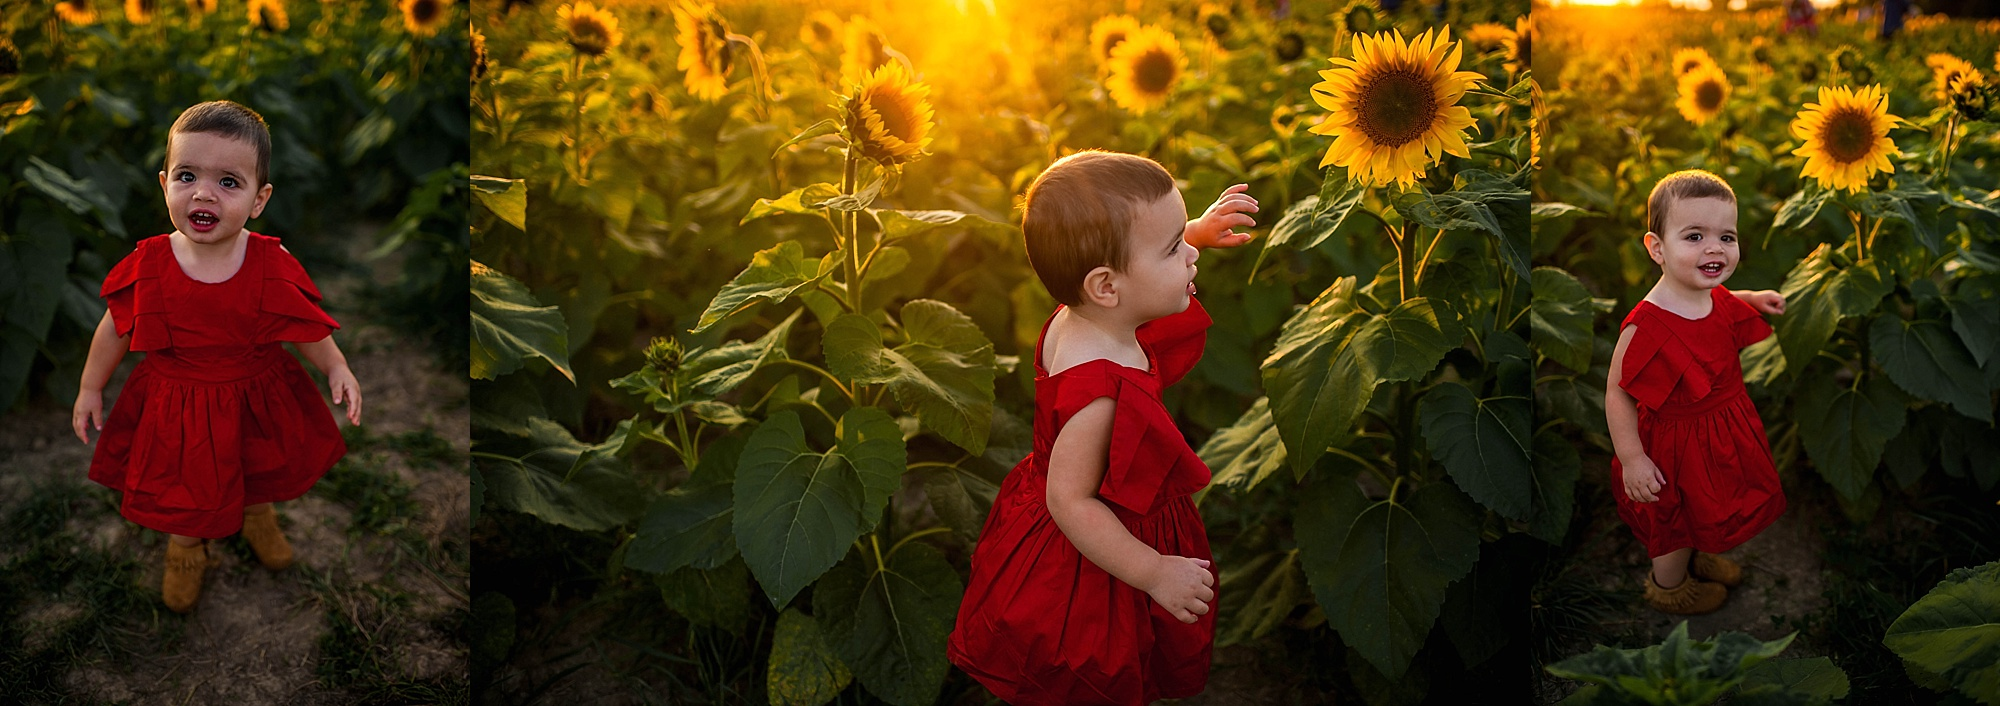 lauren-grayson-photography-cleveland-ohio-photographer-sunflower-fields-sunset-golden-hour-photo-shoot-mommy-and-me-family-child-photographer_0557.jpg